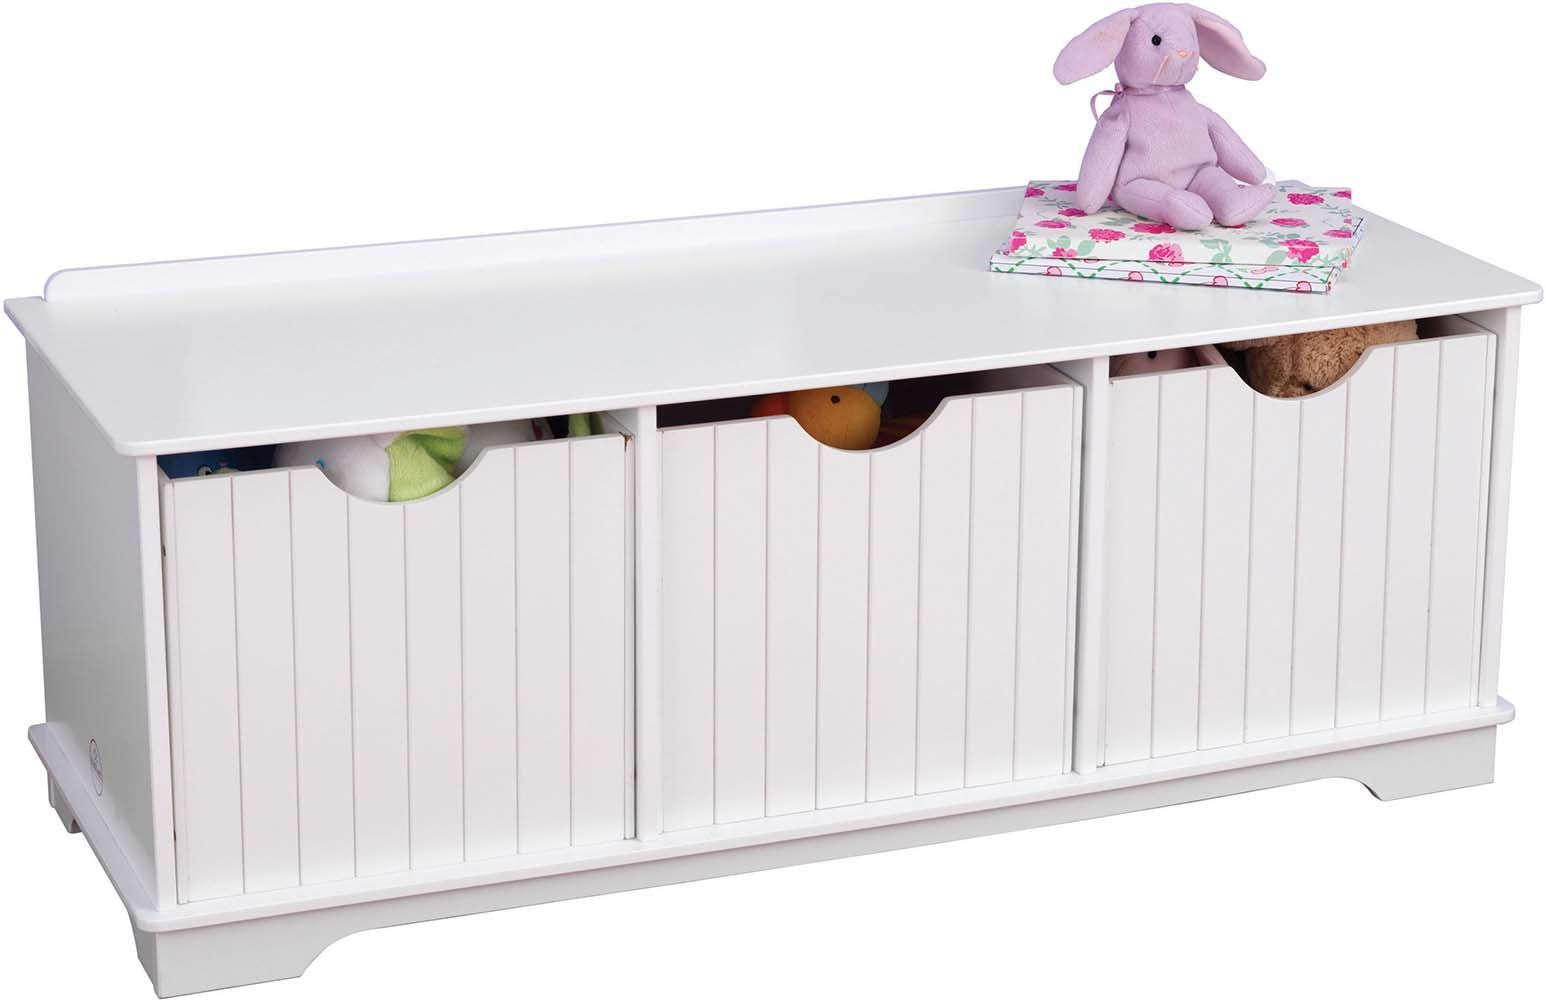 banc de rangement enfant nantucket. Black Bedroom Furniture Sets. Home Design Ideas